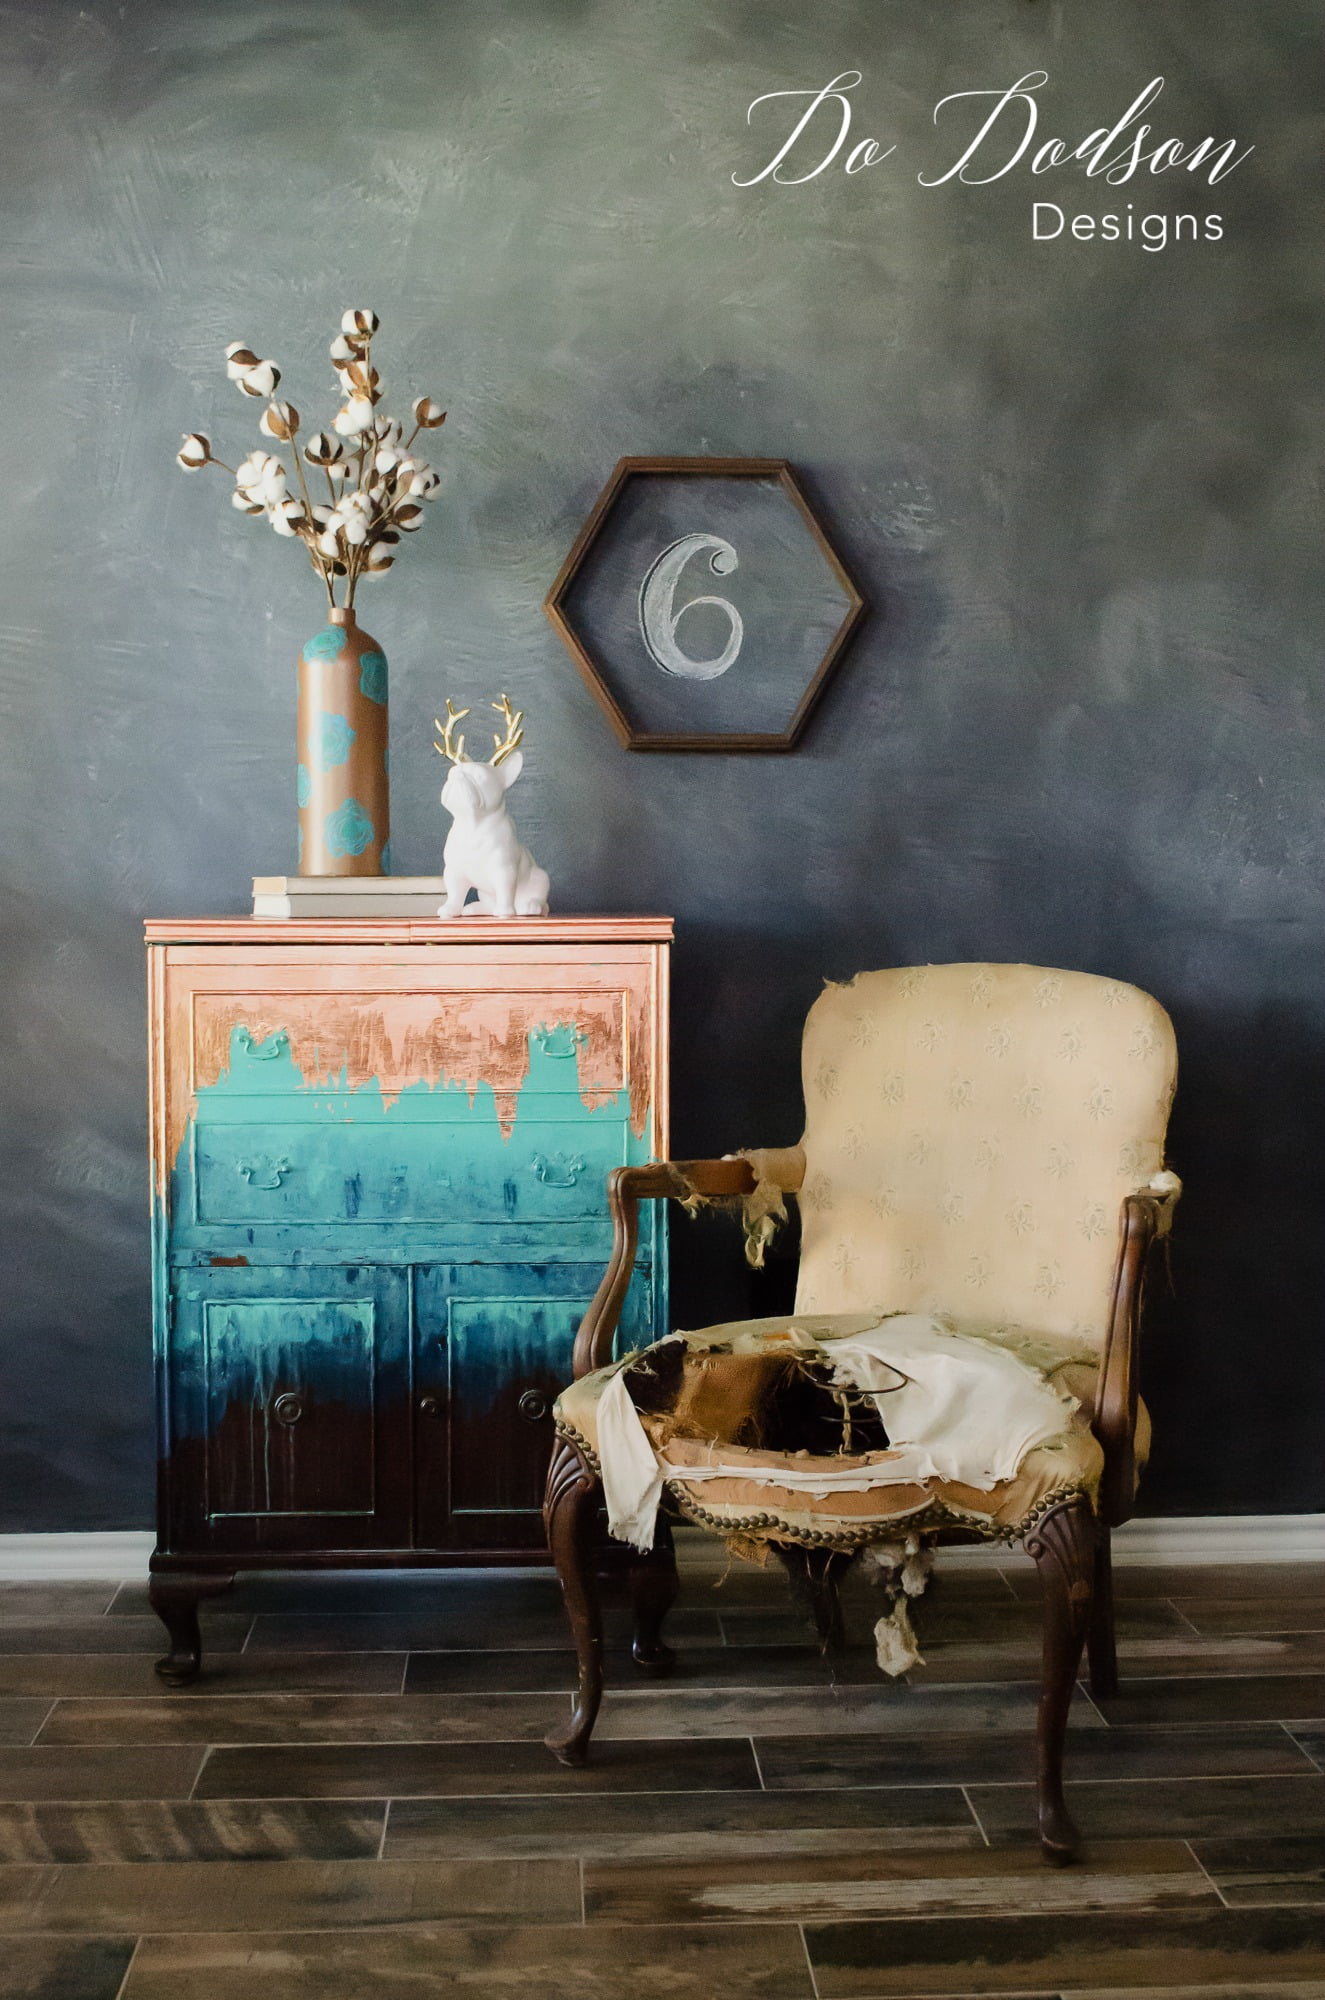 diy copper leaf finish for furniture 16 do dodson designs. Black Bedroom Furniture Sets. Home Design Ideas